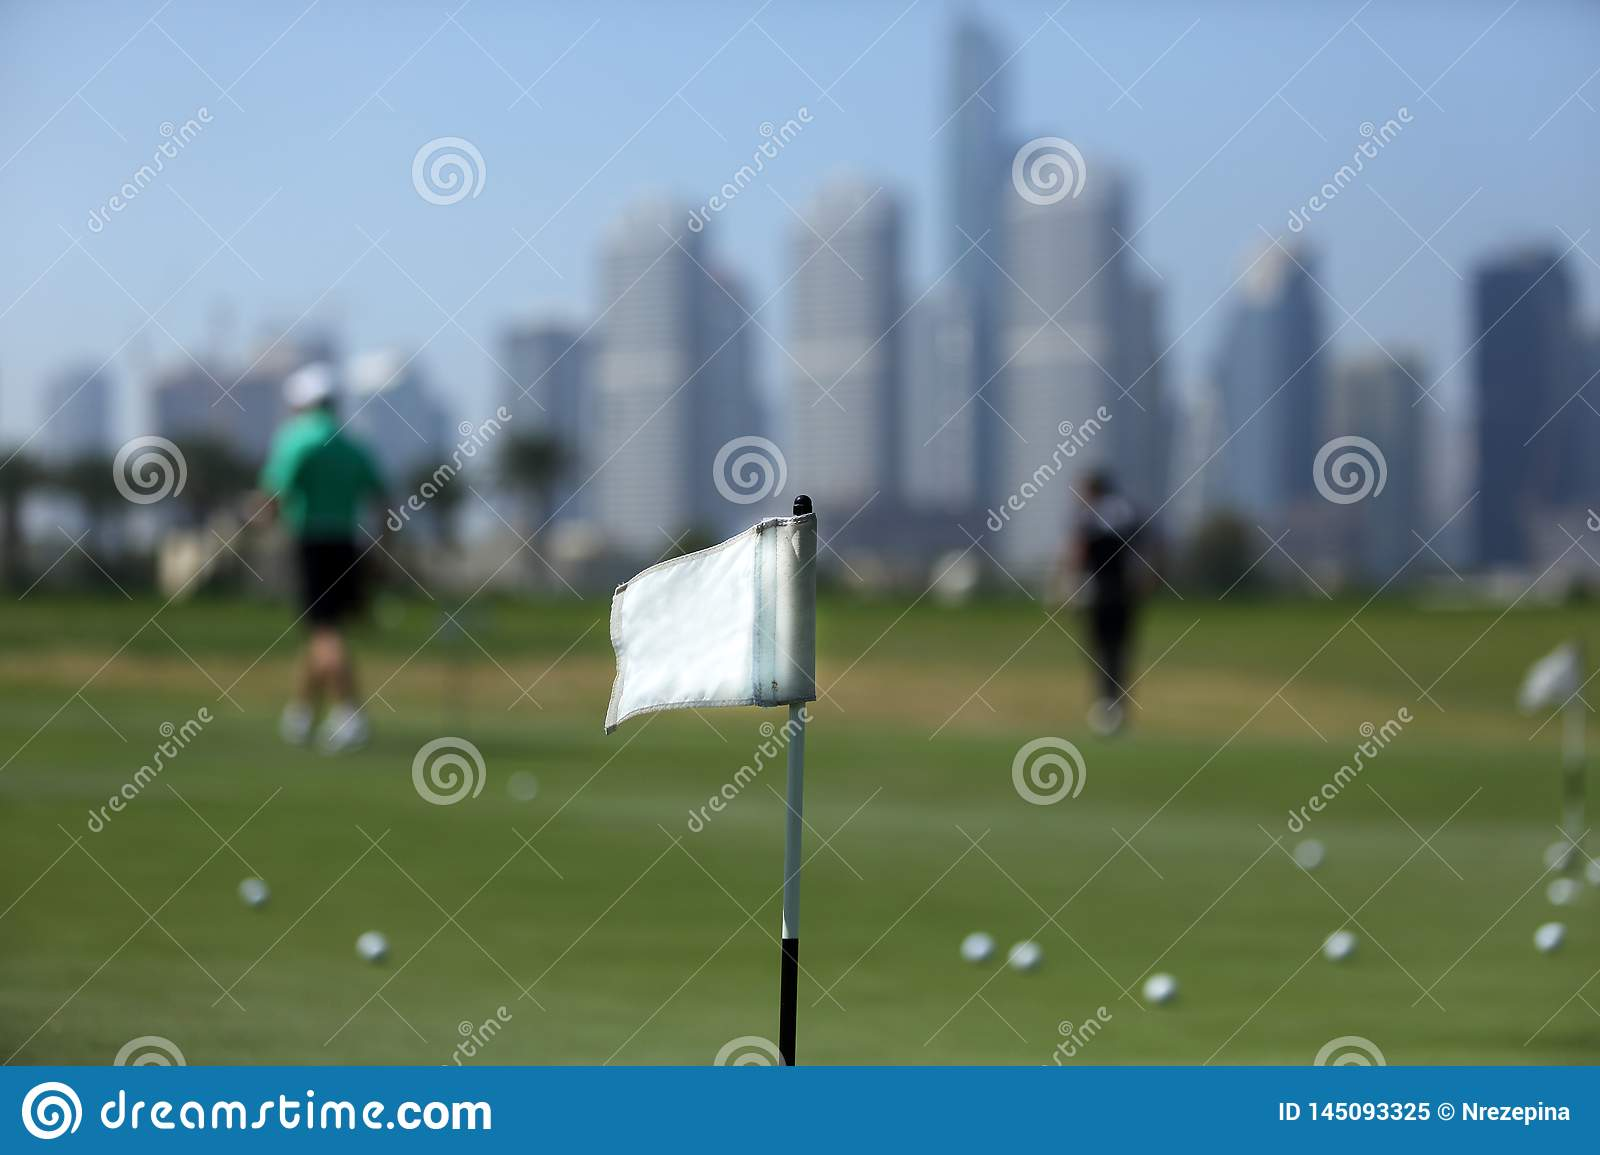 A flag on golf course amid golfers and skyscrapers in dubai